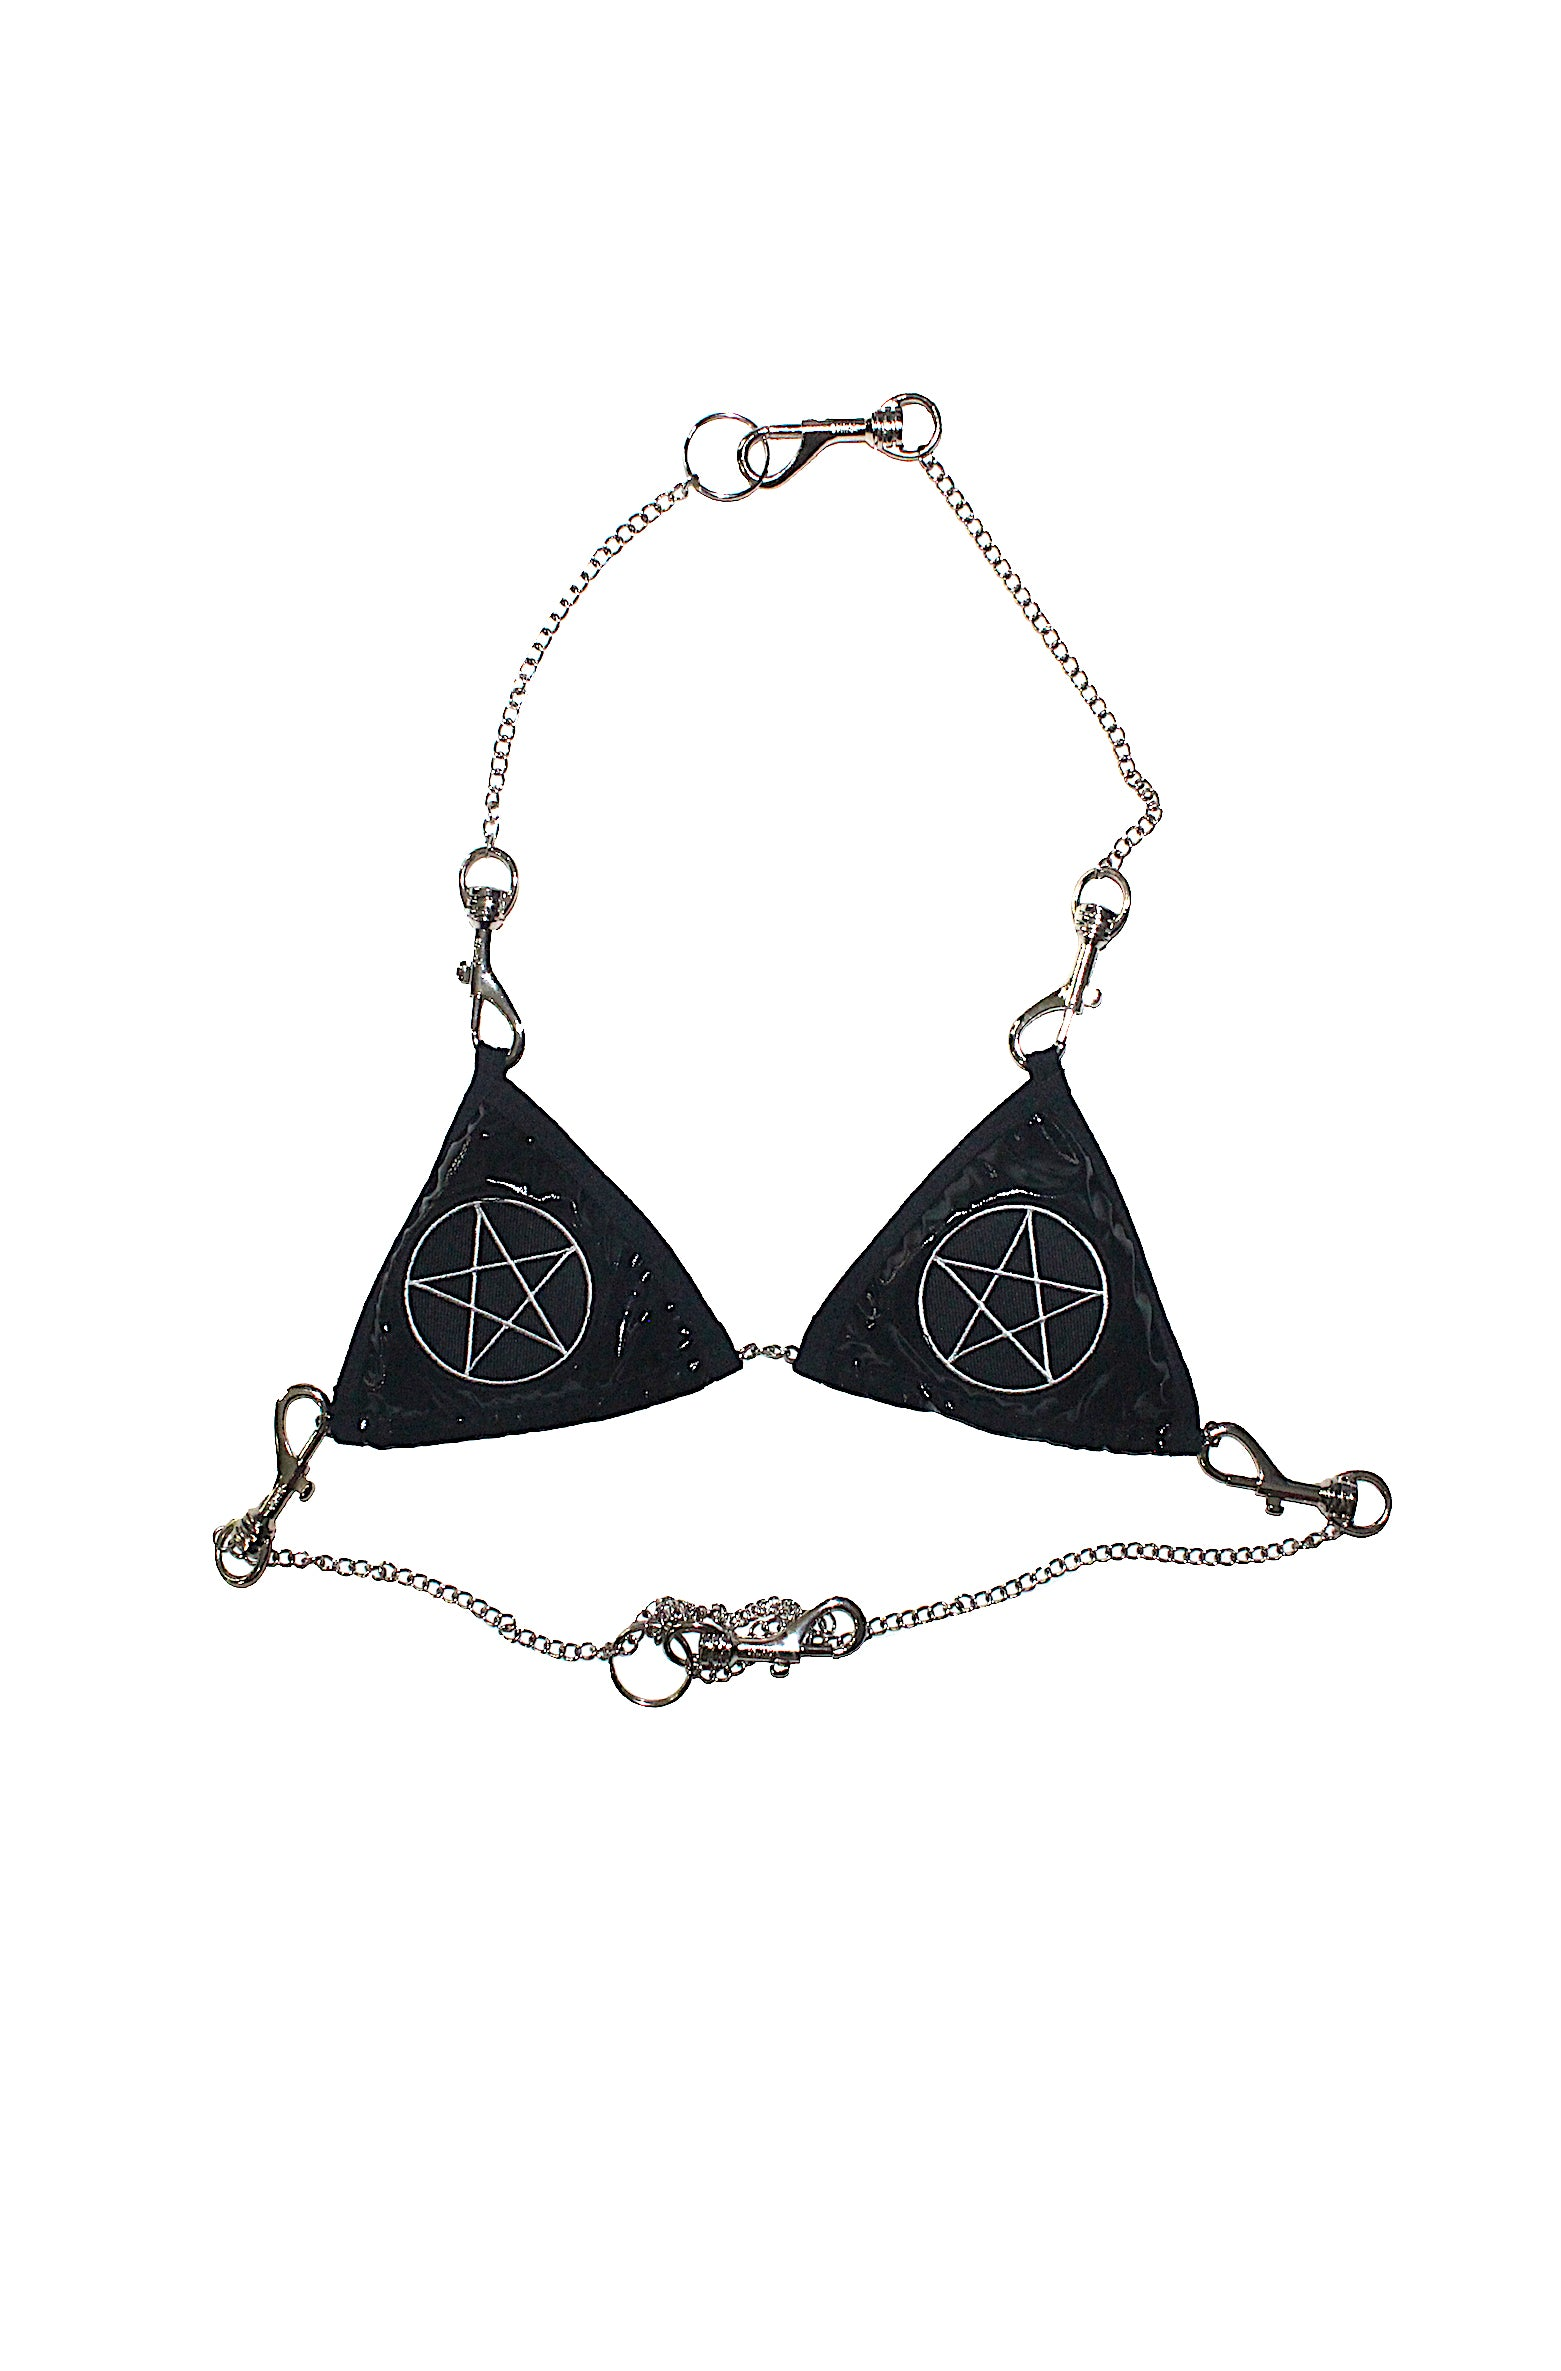 "THE "" PENTAGRAM VINYL BRA"""